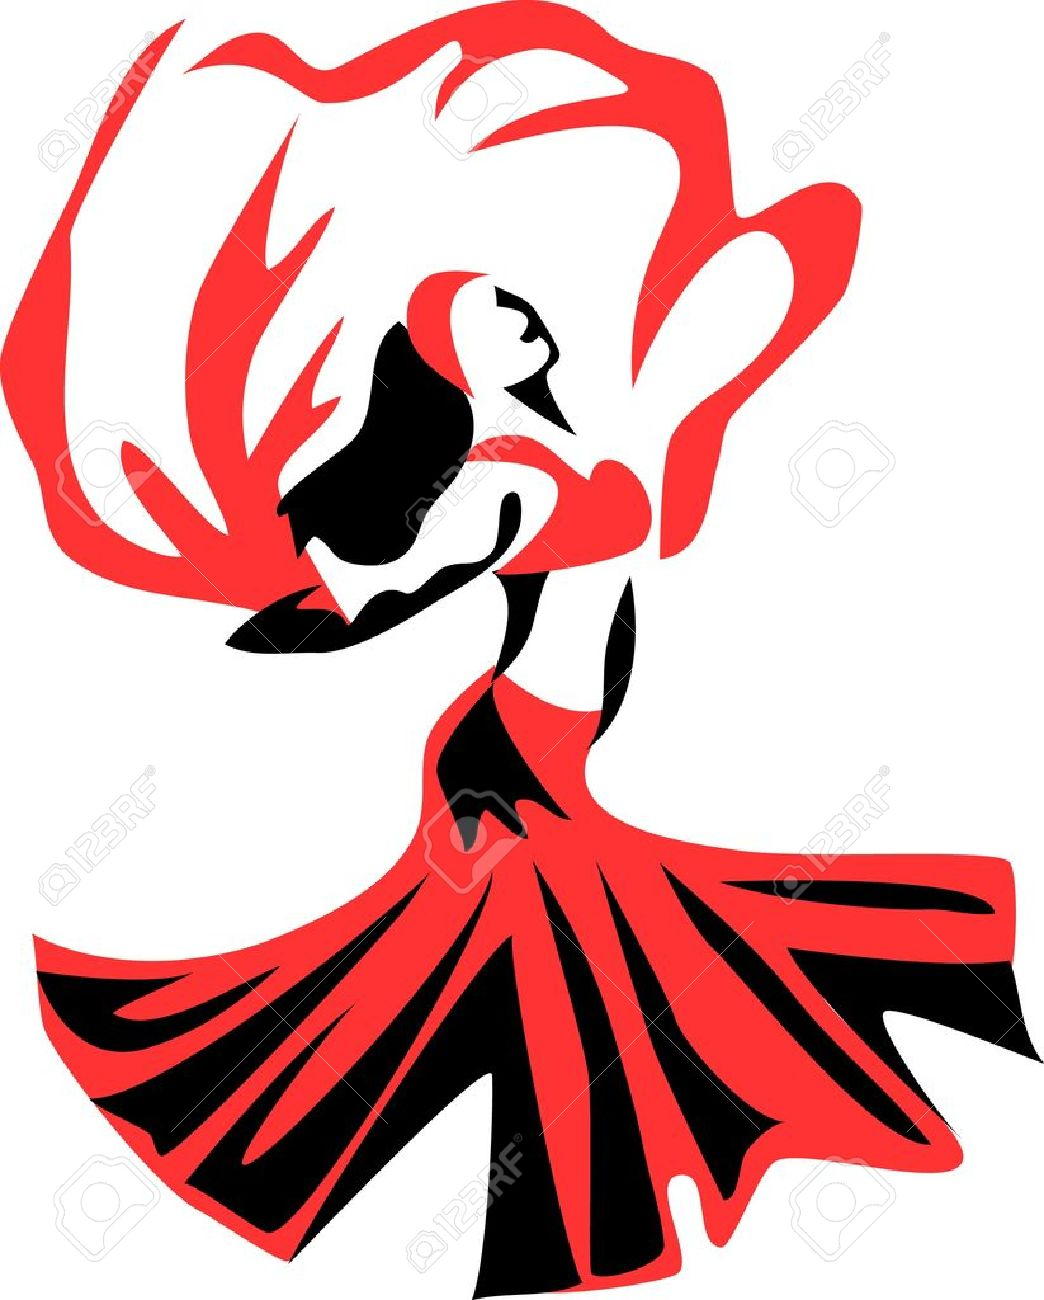 Belly Dancer With A Veil Royalty Free Cliparts, Vectors, And Stock ...